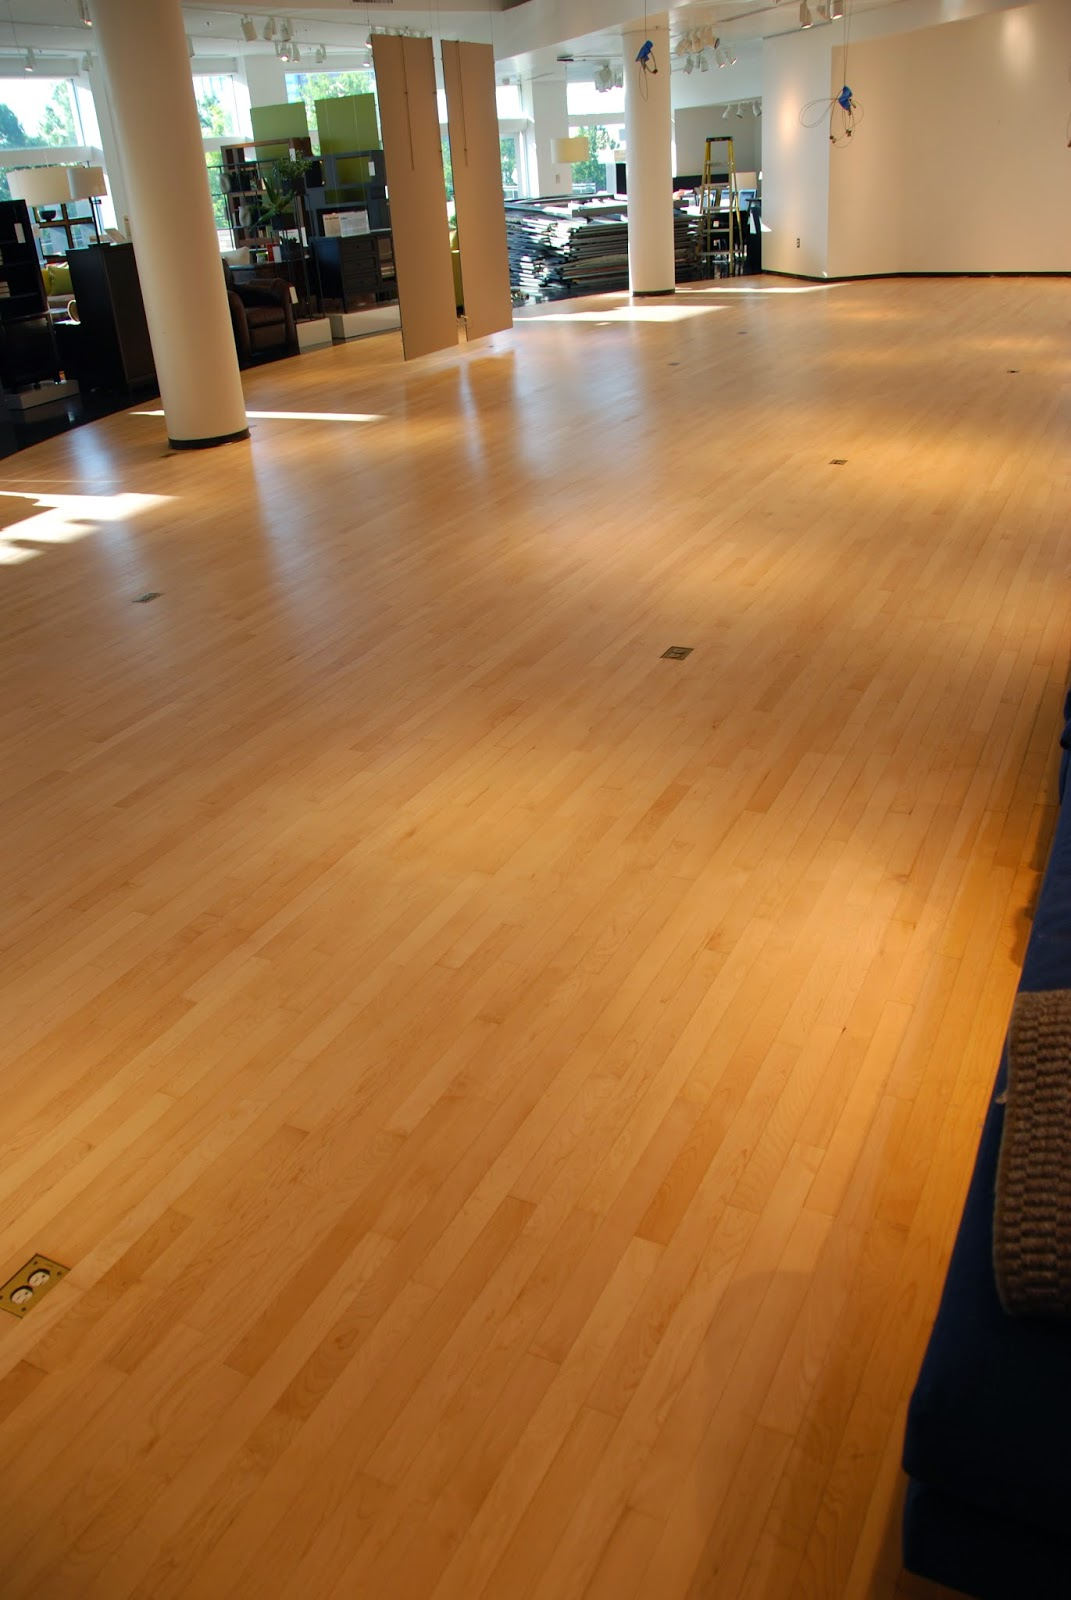 little known benefits of uv curing hardwood floors american traditional coating and curing options the outcome provided stands up to the competition typical